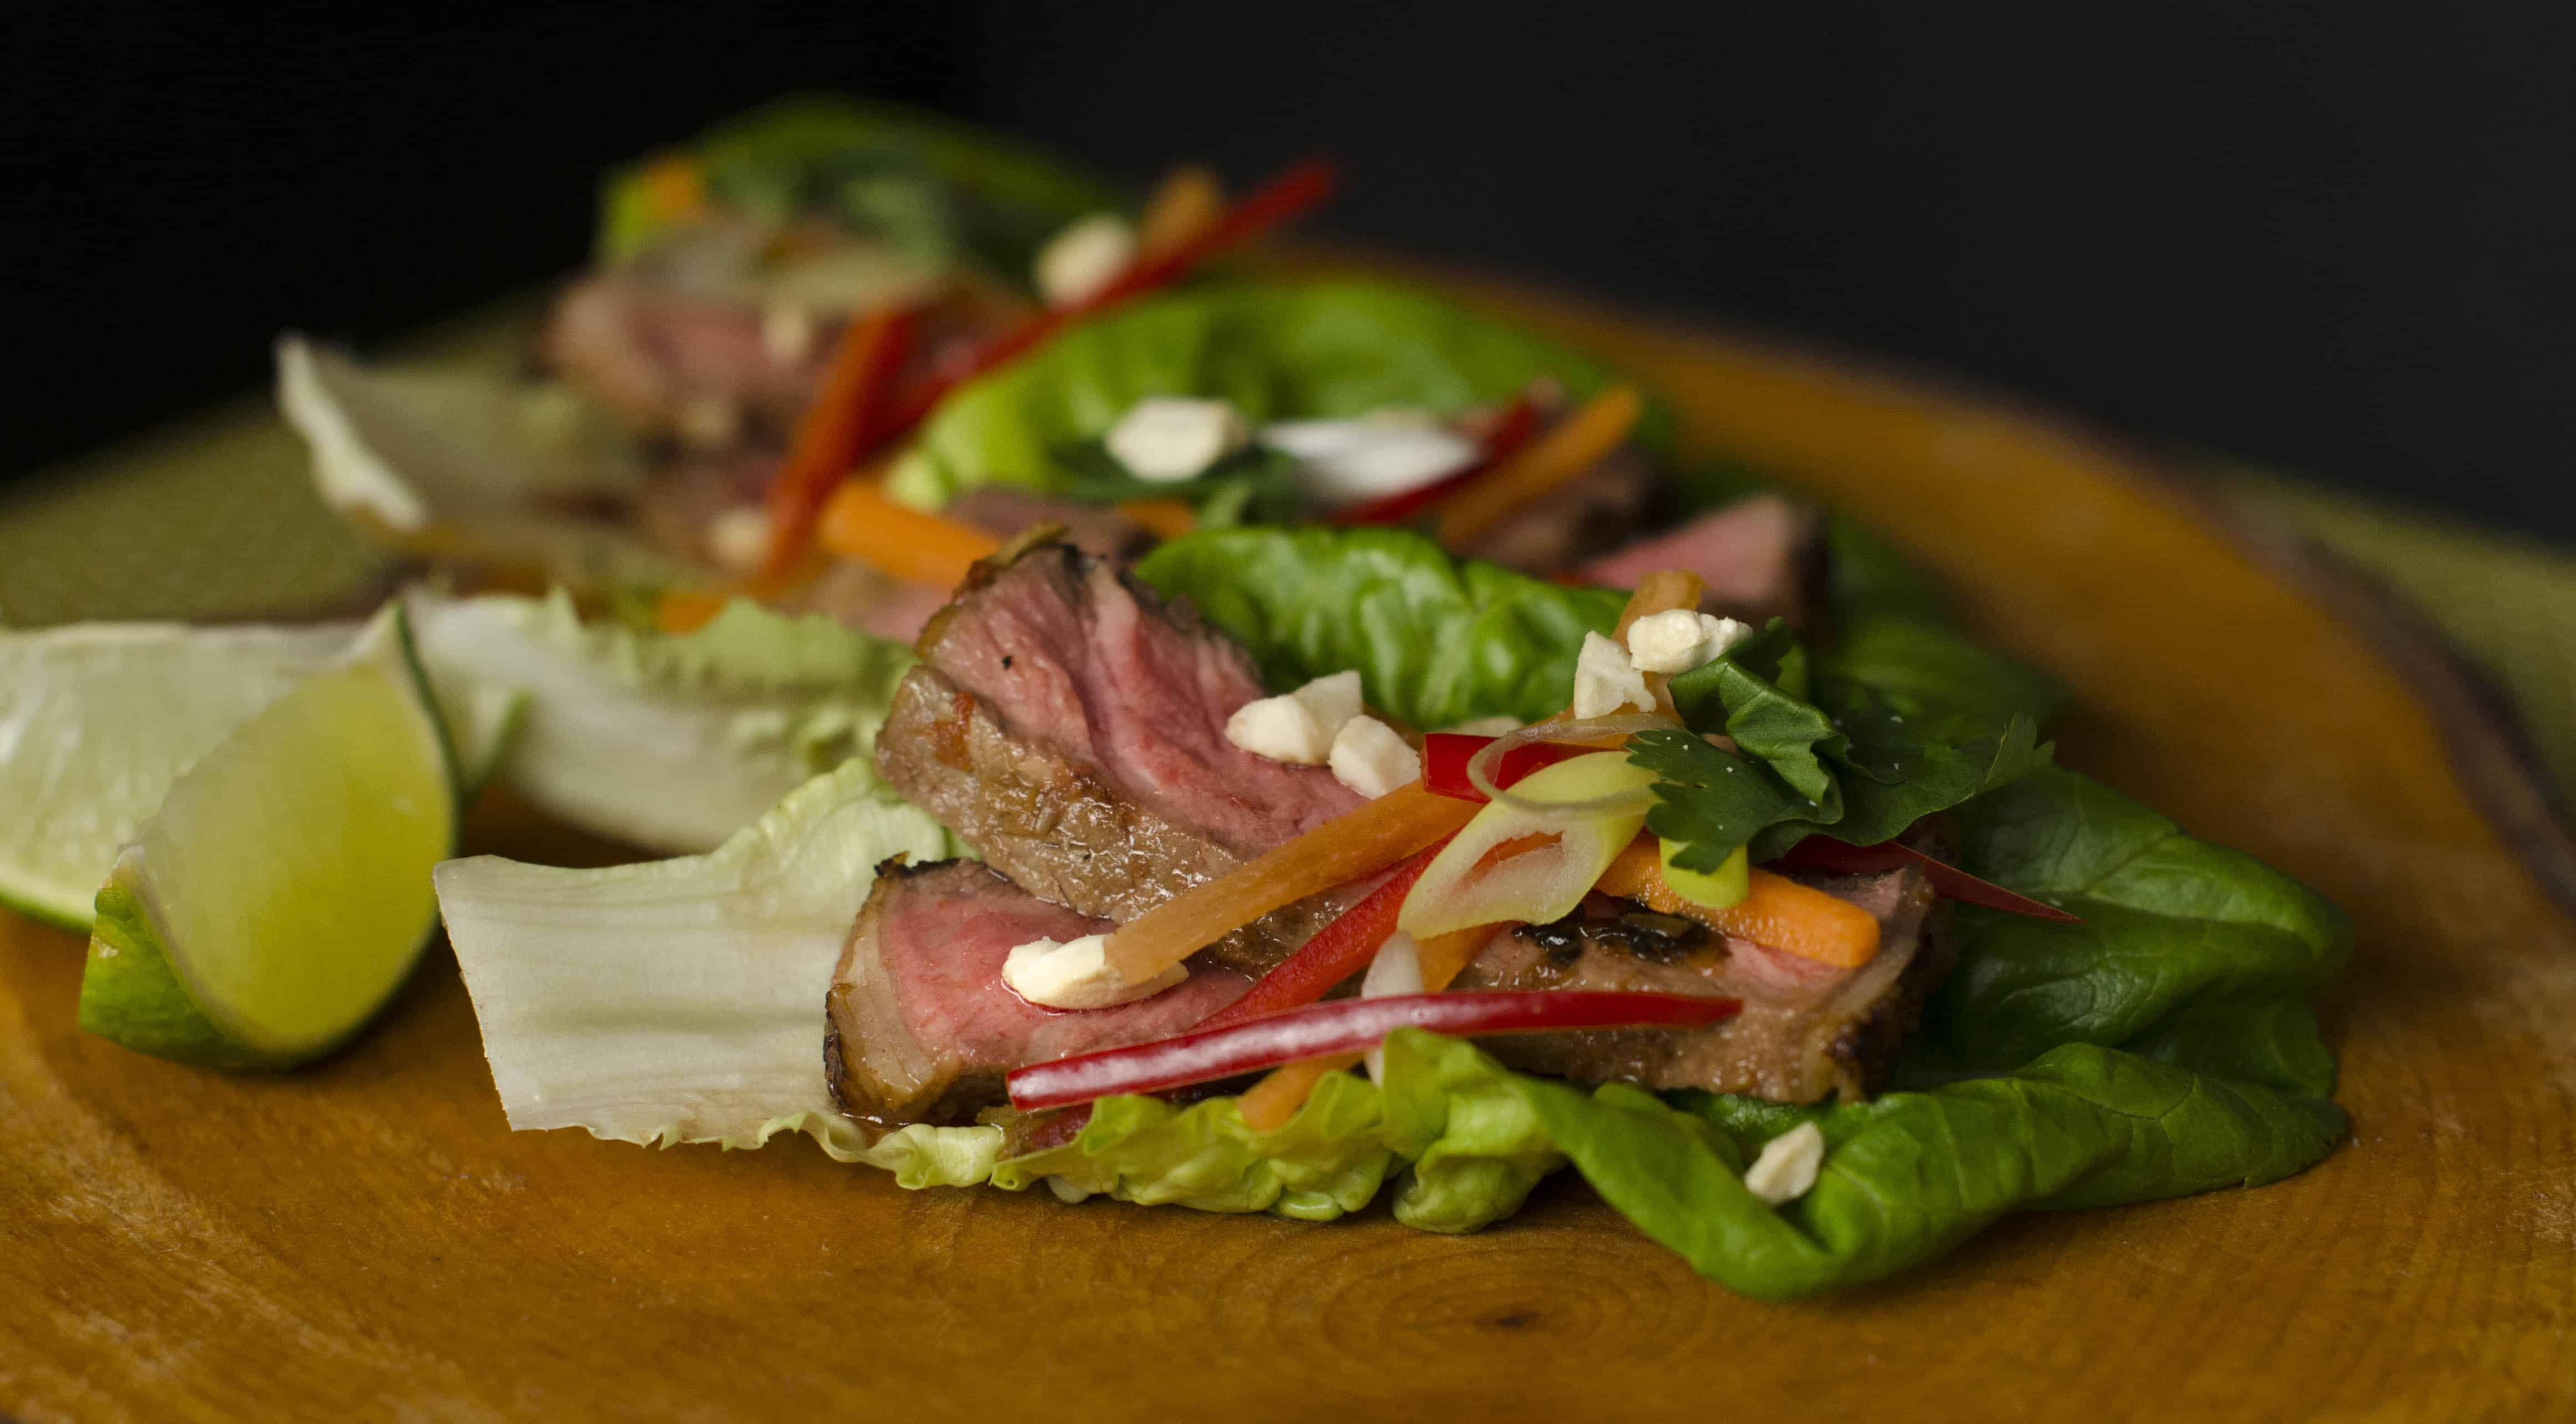 beautfully medium rare slices of sirloin steak marinated in a lemongrass rub served on lettuce leaves and topped with chillis and spring onions and a slice of lime on a wooden chopping board.